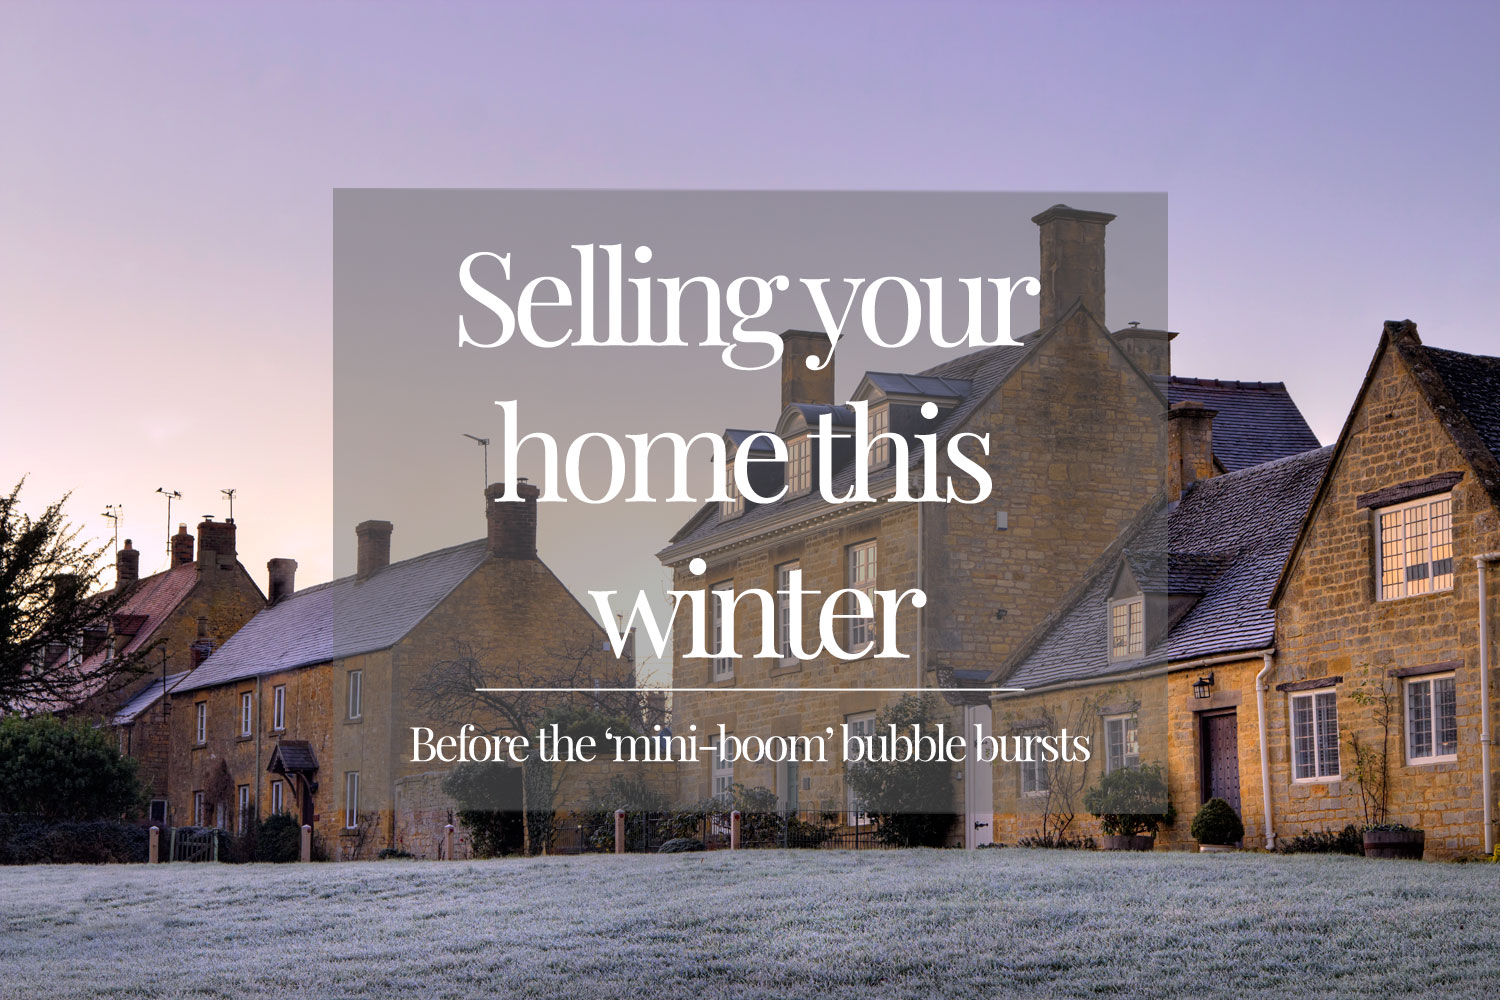 Selling-your-home-this-winter—before-the-'mini-boom'-bubble-bursts-featured-image